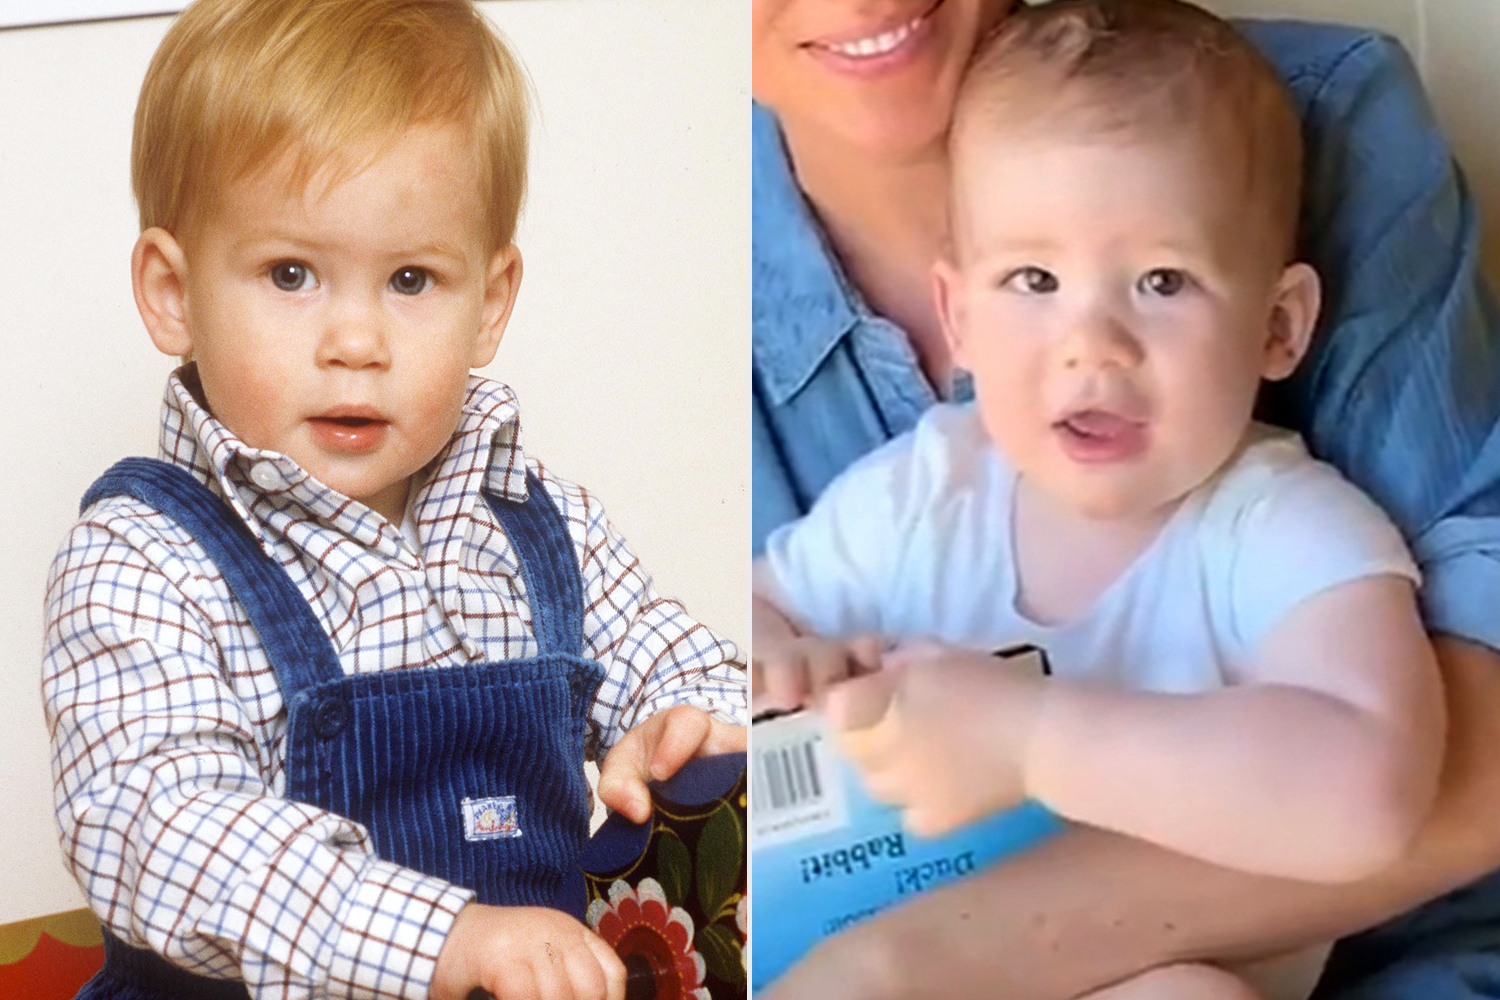 archie and prince harry are lookalikes at age 1 people com archie and prince harry are lookalikes